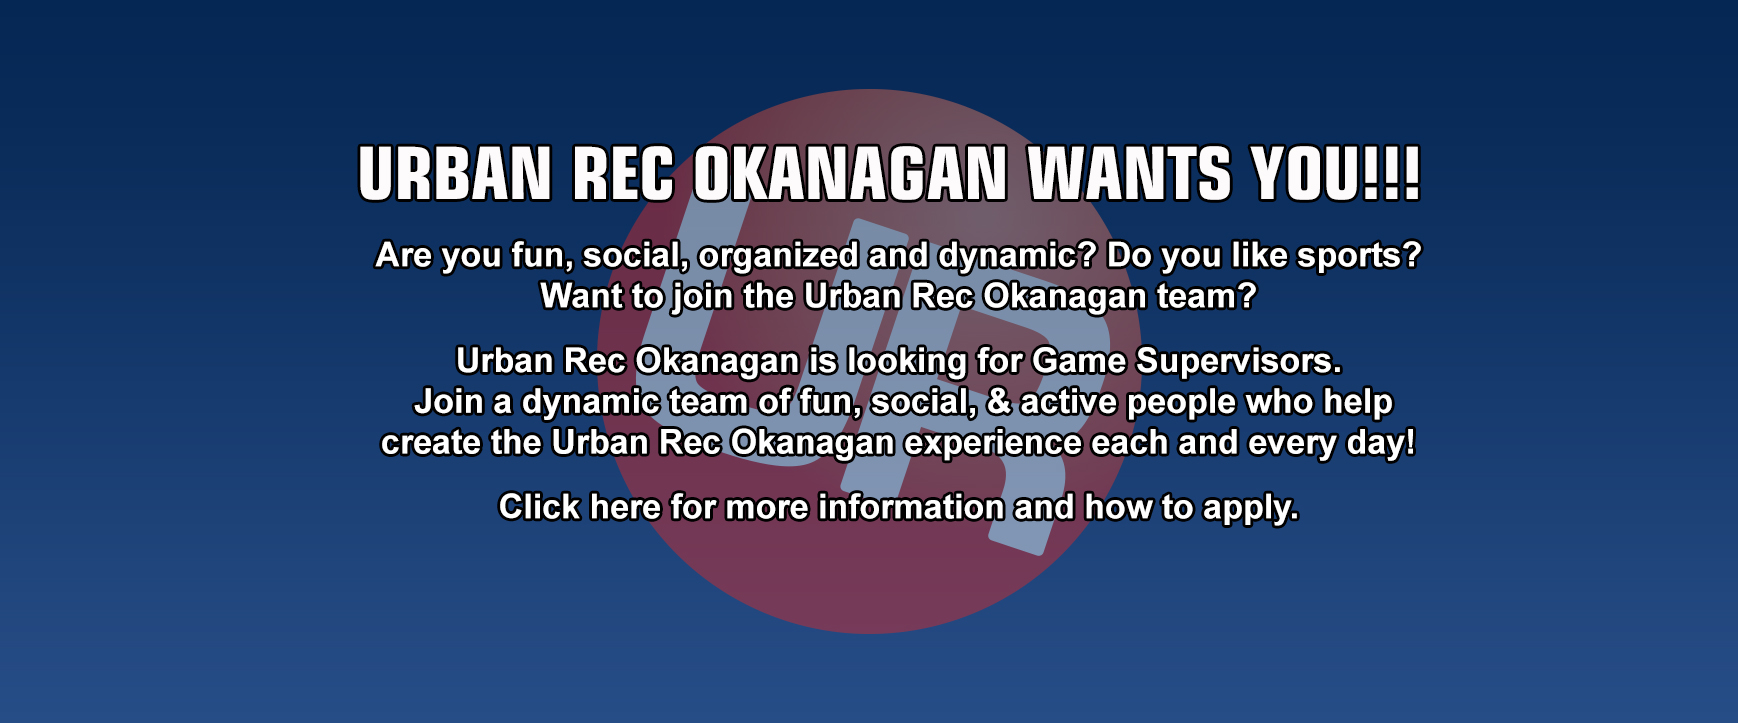 Get into the action with Urban Rec